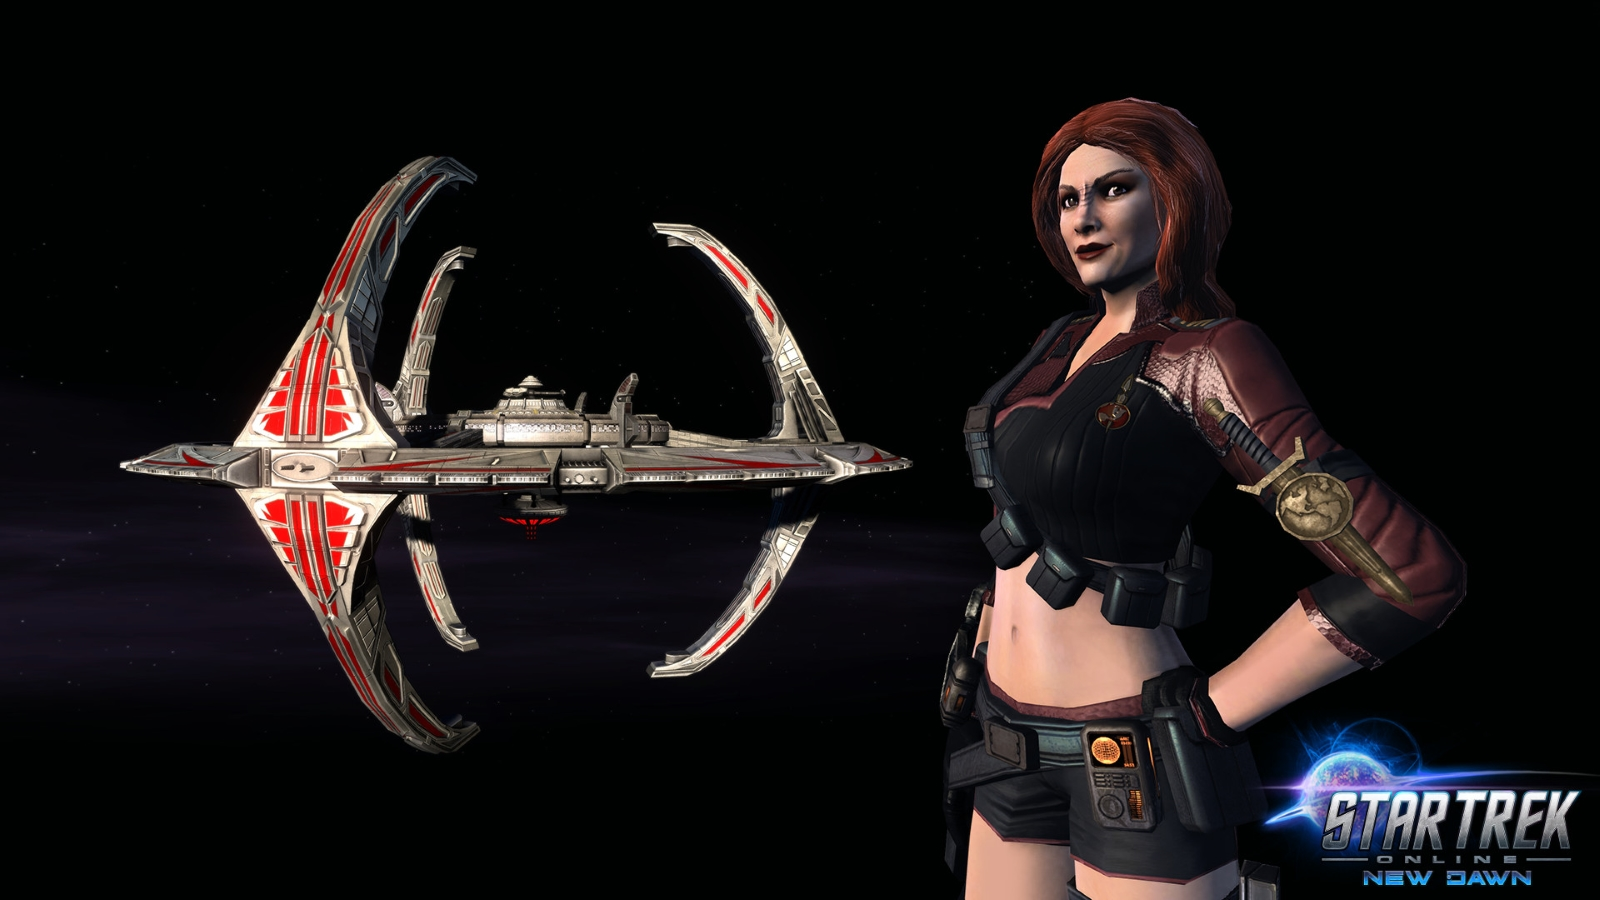 Star-Trek-Online-Season-11-New-Dawn.jpg